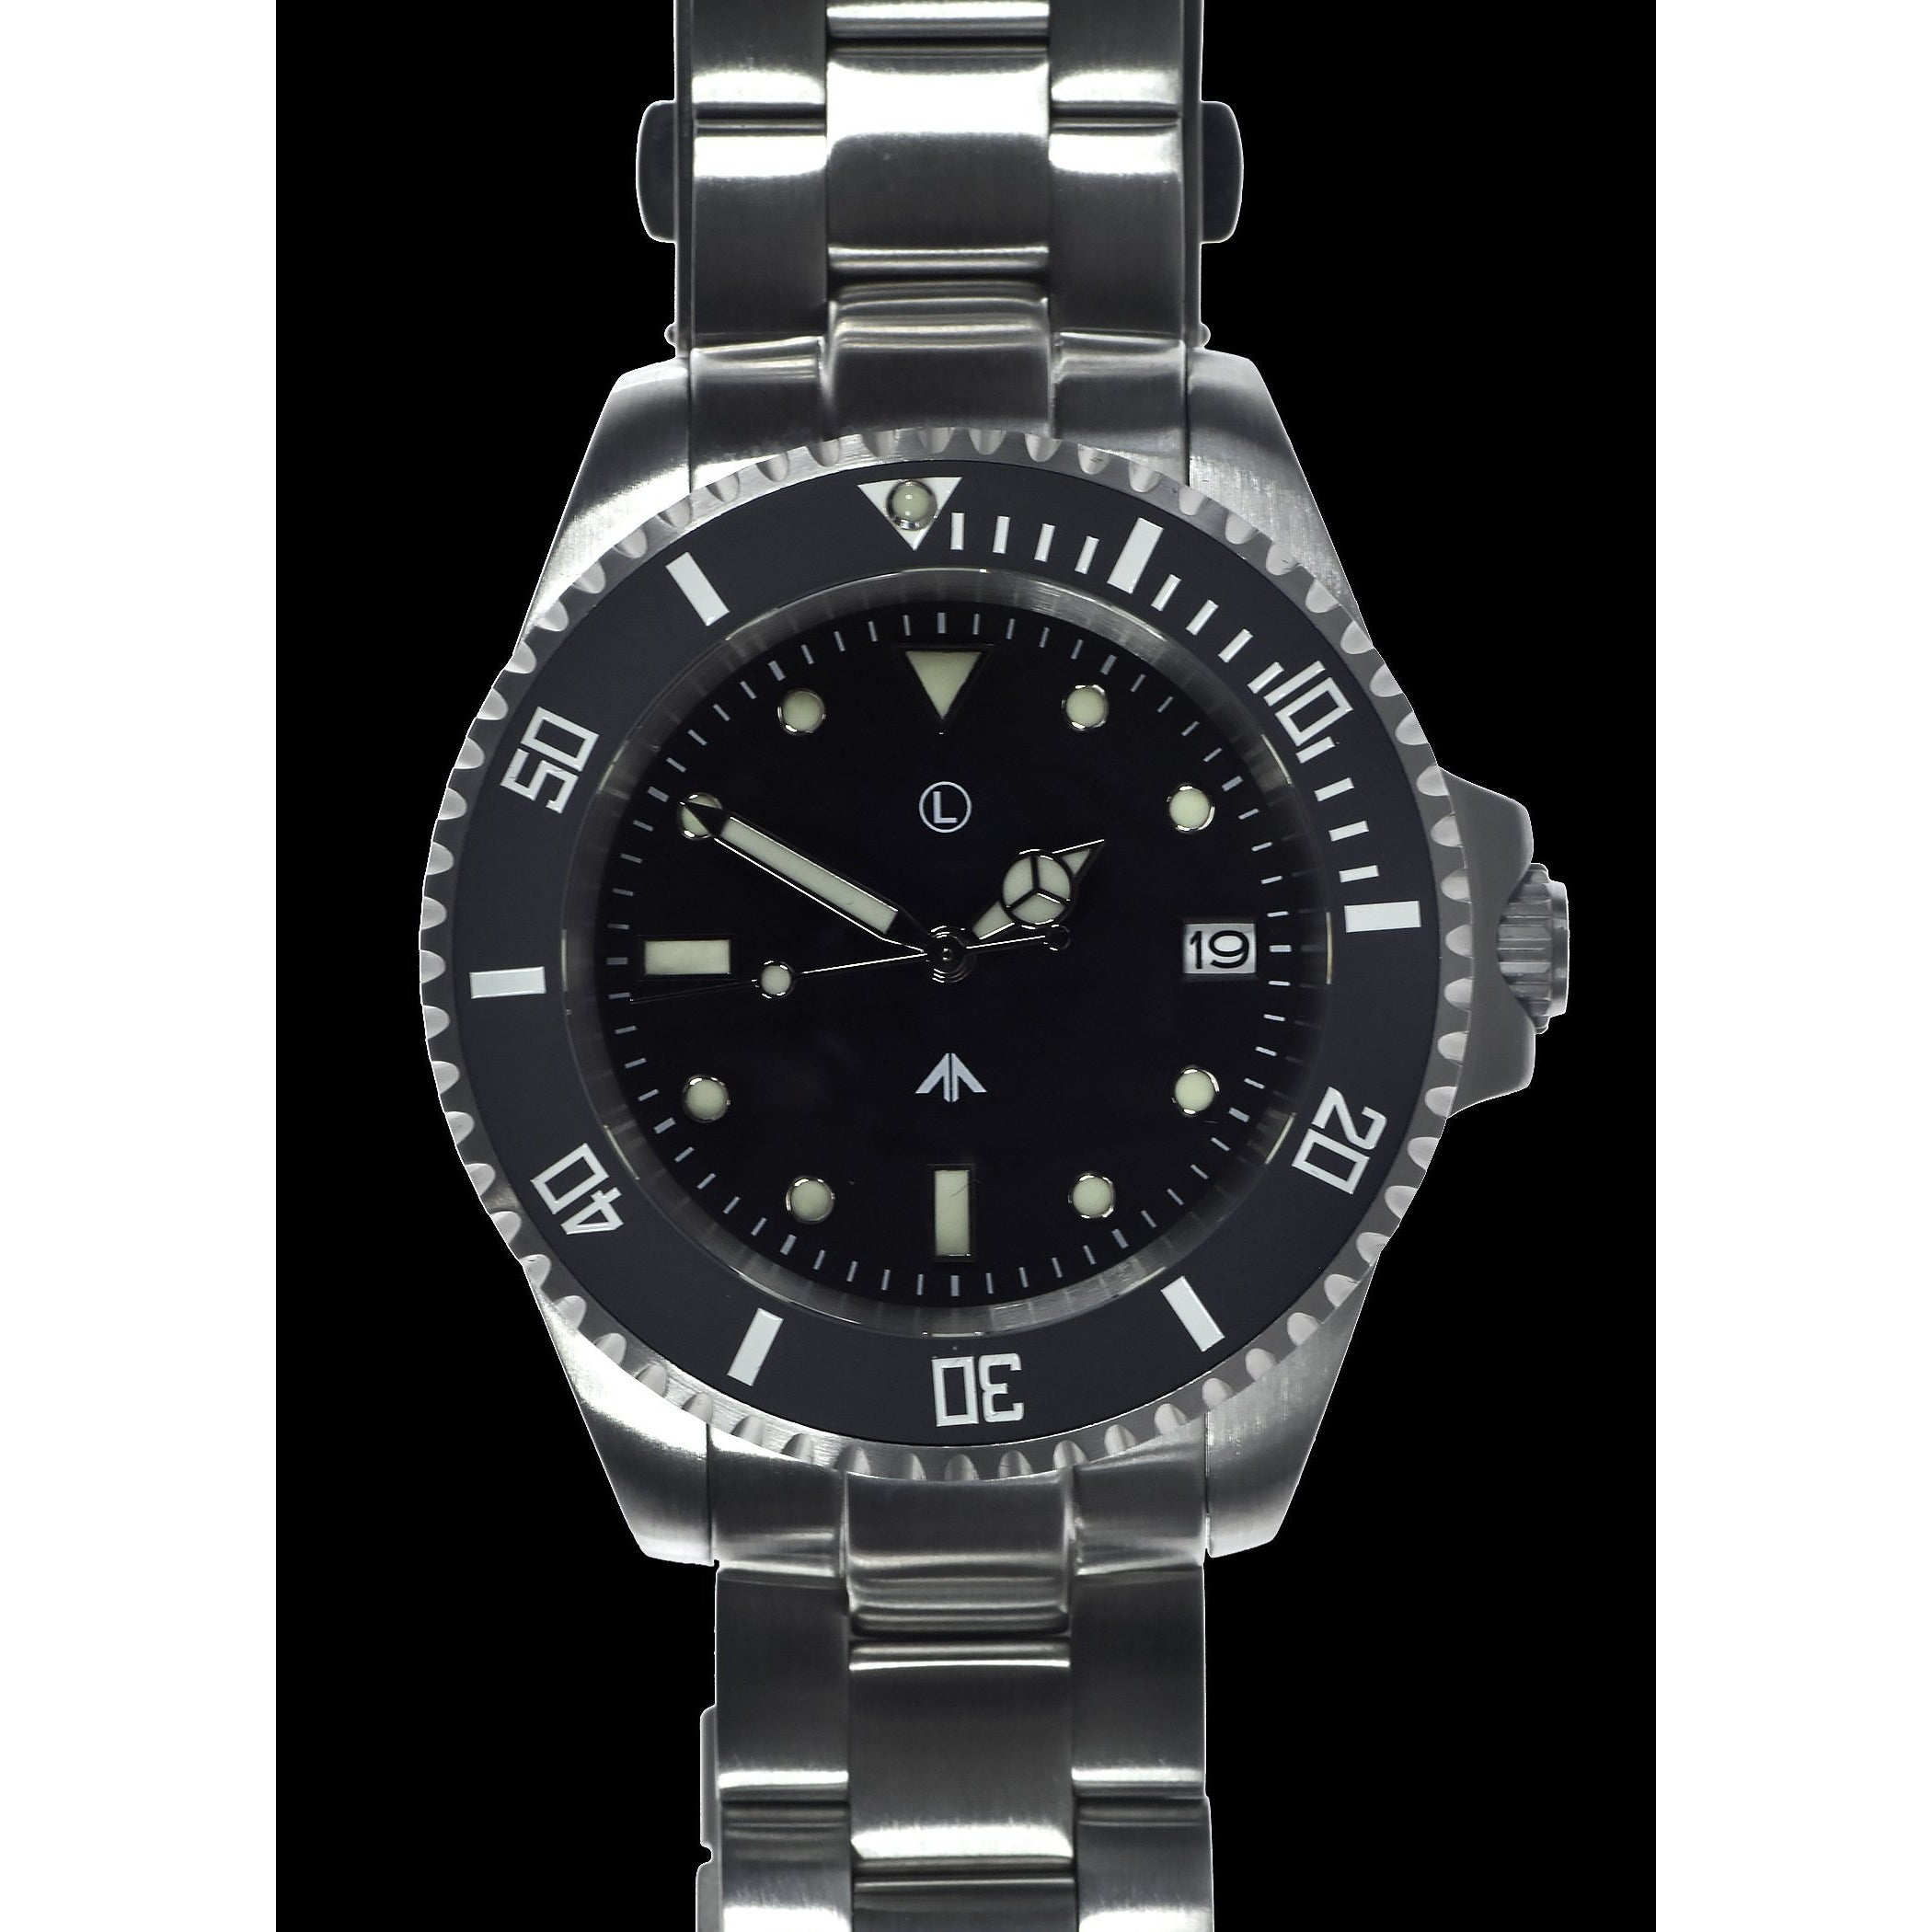 MWC 24 Jewel 300m Water Resistant Automatic Military Divers Watch Steel Bracelet with Sapphire Crystal and Ceramic Bezel